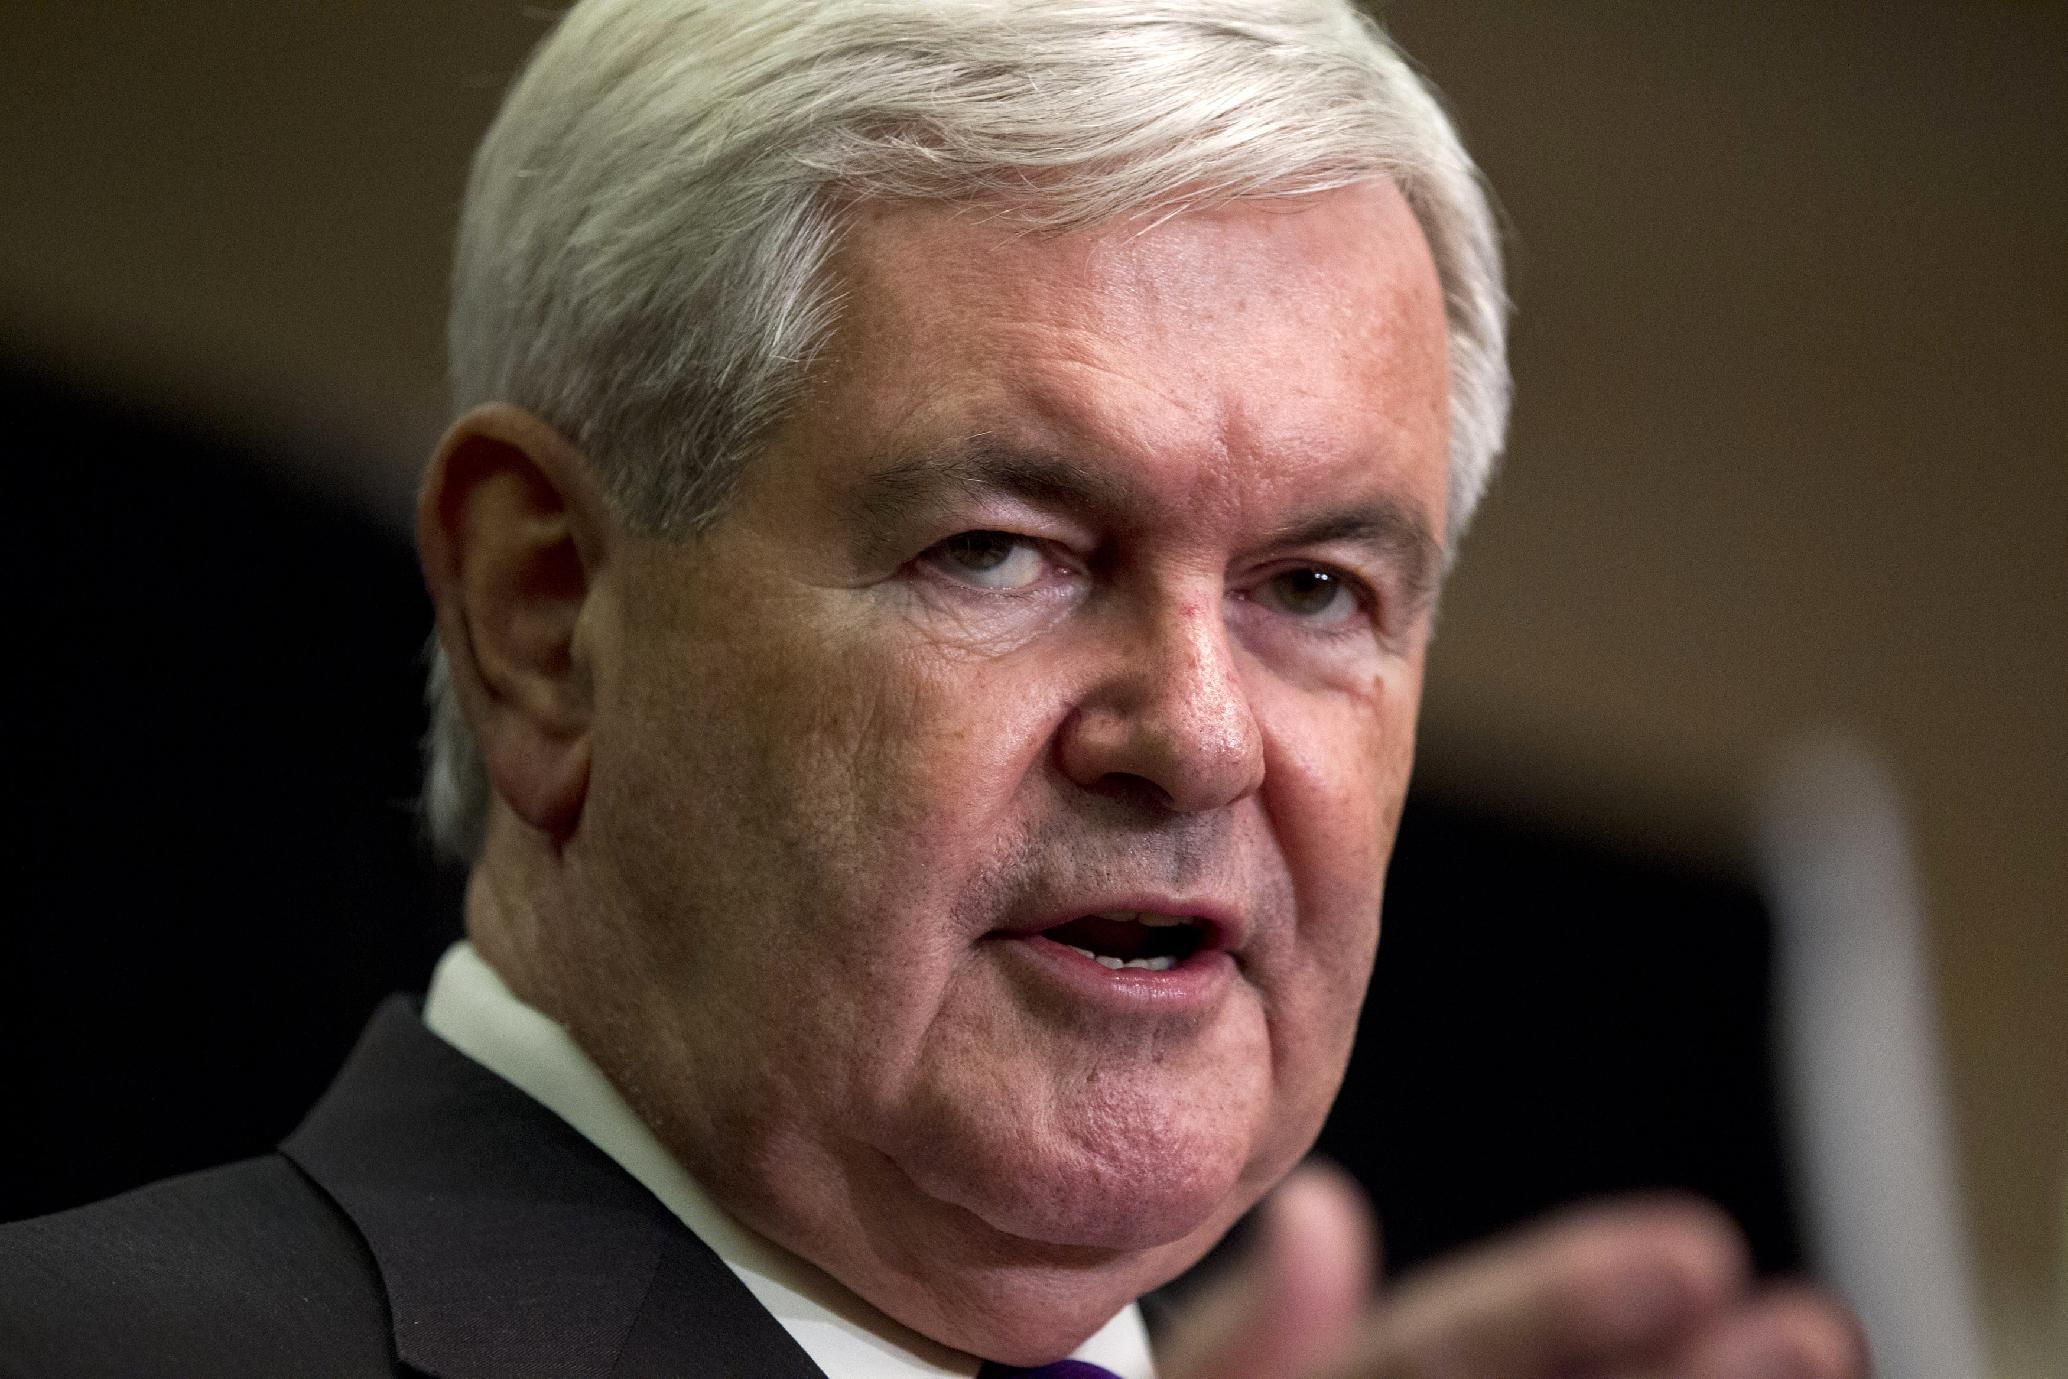 Republican presidential candidate, former House Speaker Newt Gingrich announces that he is suspending his presidential campaign, Wednesday, May 2, 2012, in Arlington, Va. (AP Photo/Evan Vucci)